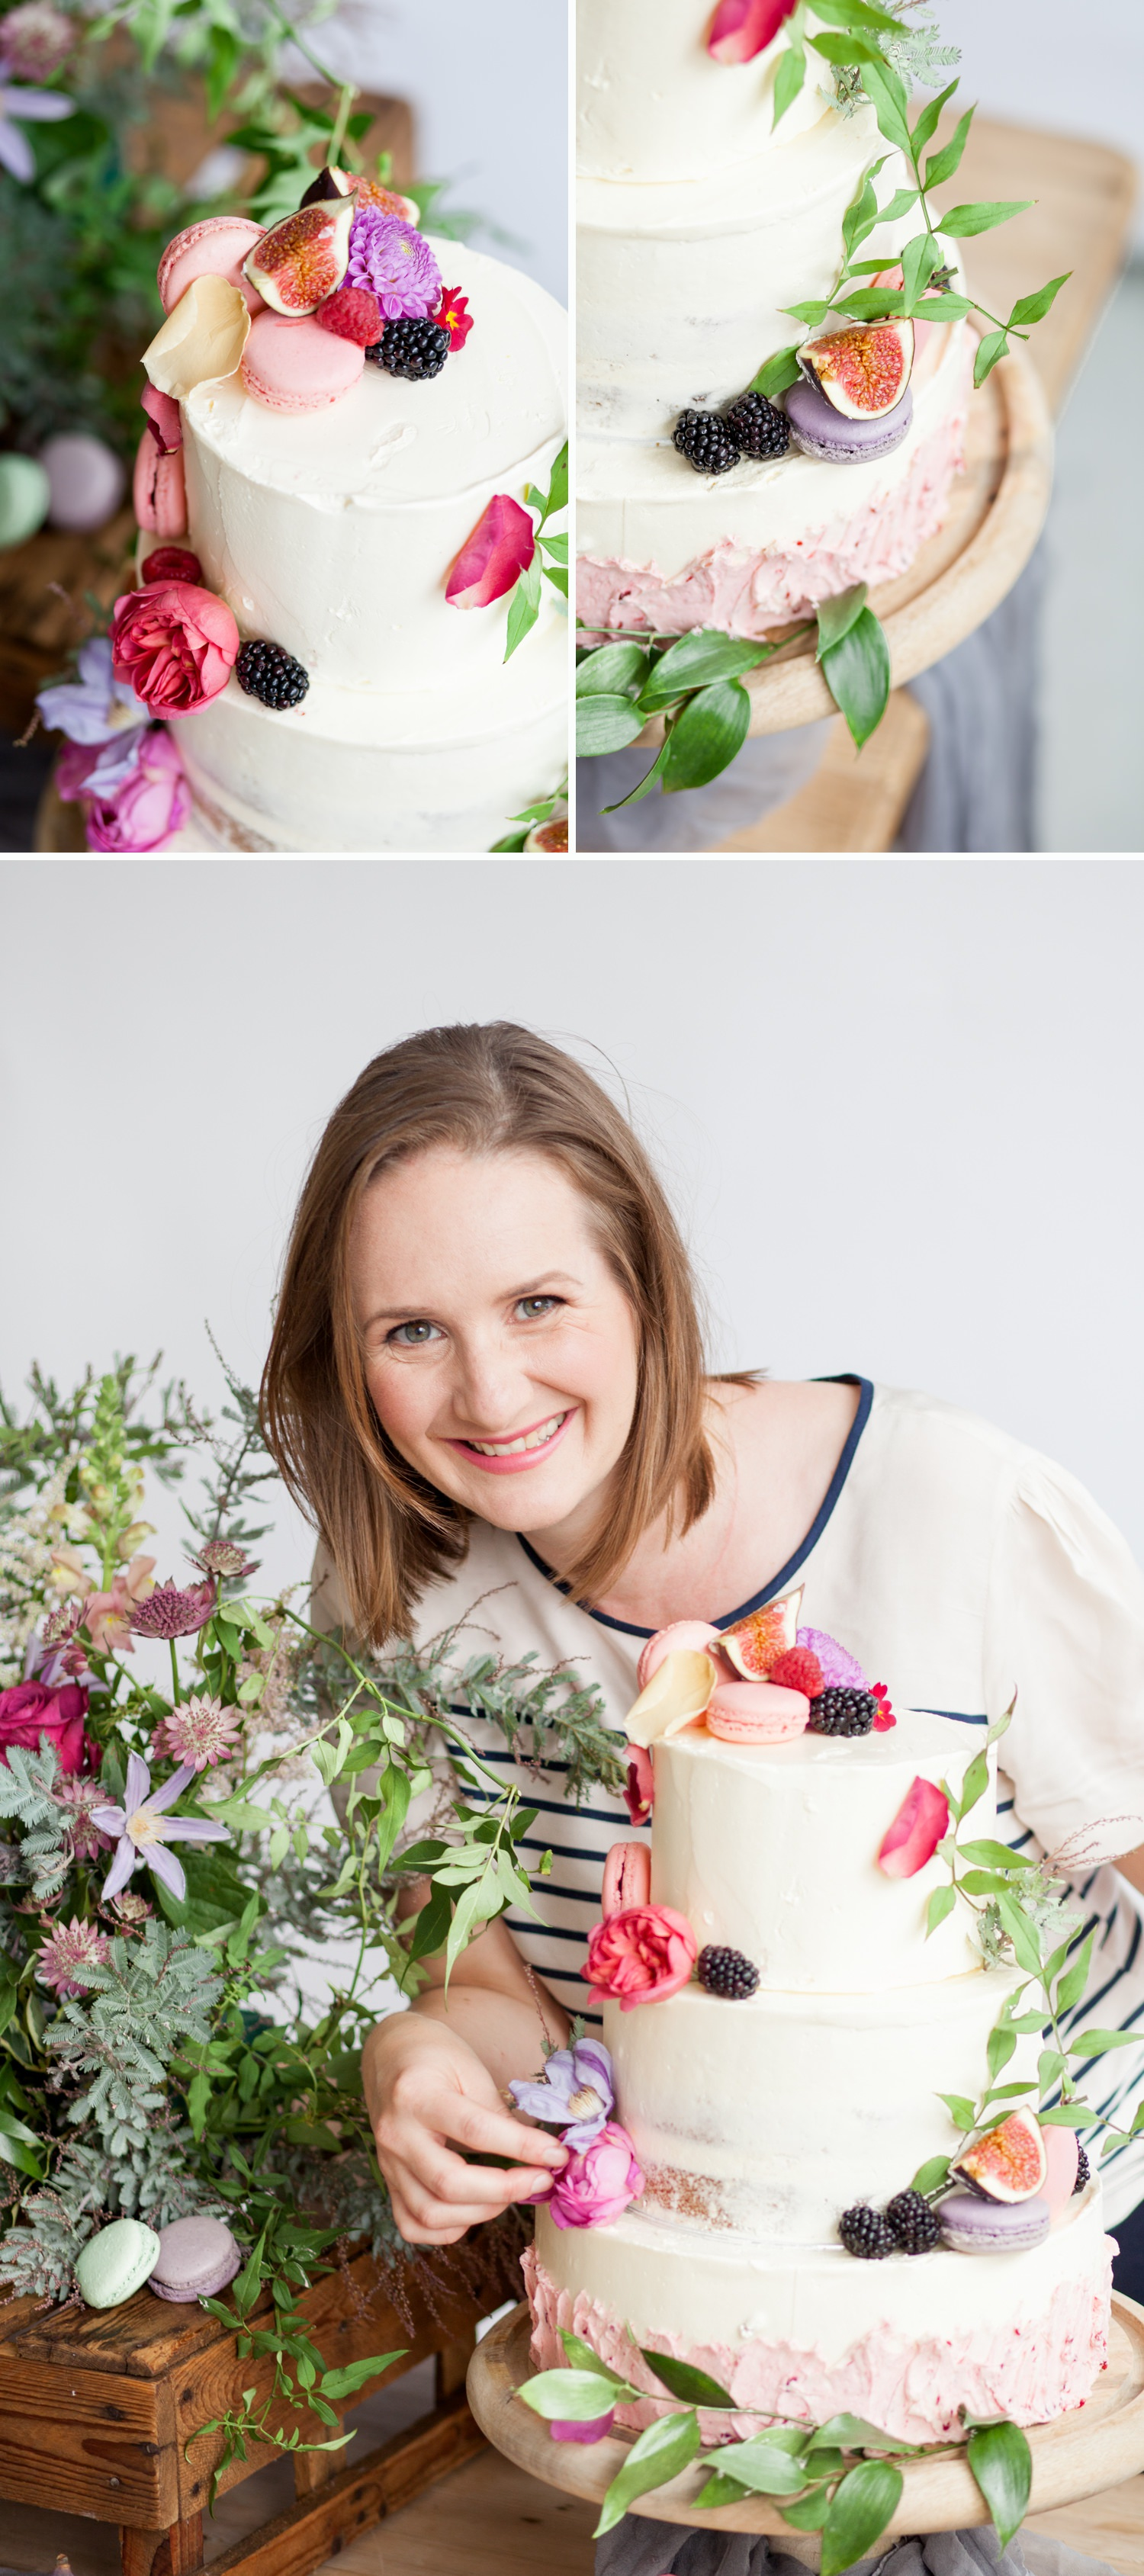 Personal branding shoot for Milk Street Kitchen - decorating a 3 tier cake